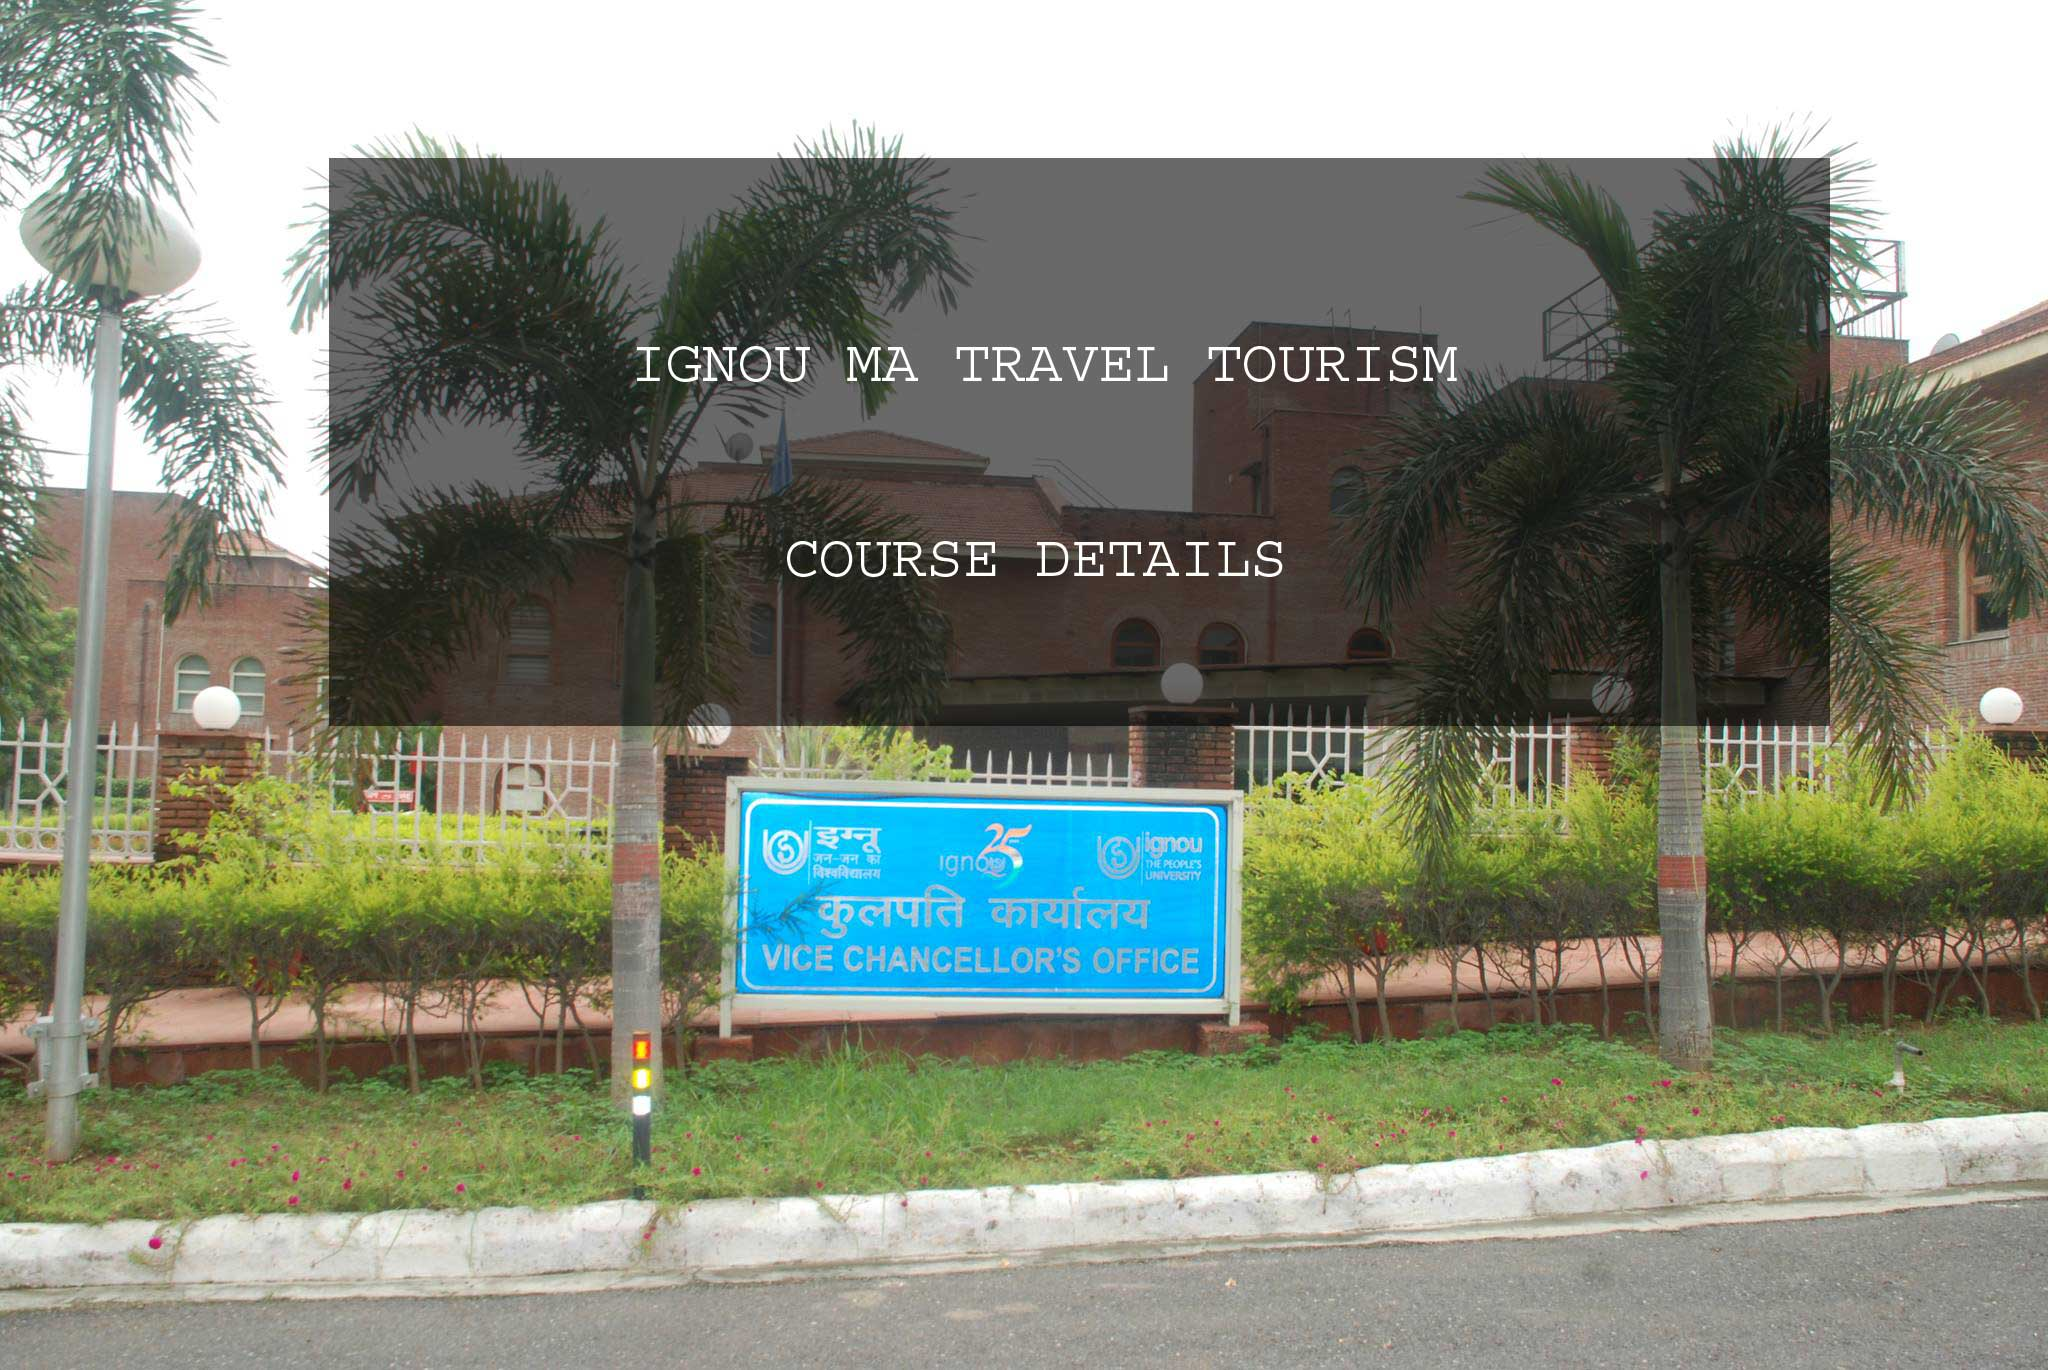 IGNOU MA TRAVEL TOURISM COURSE